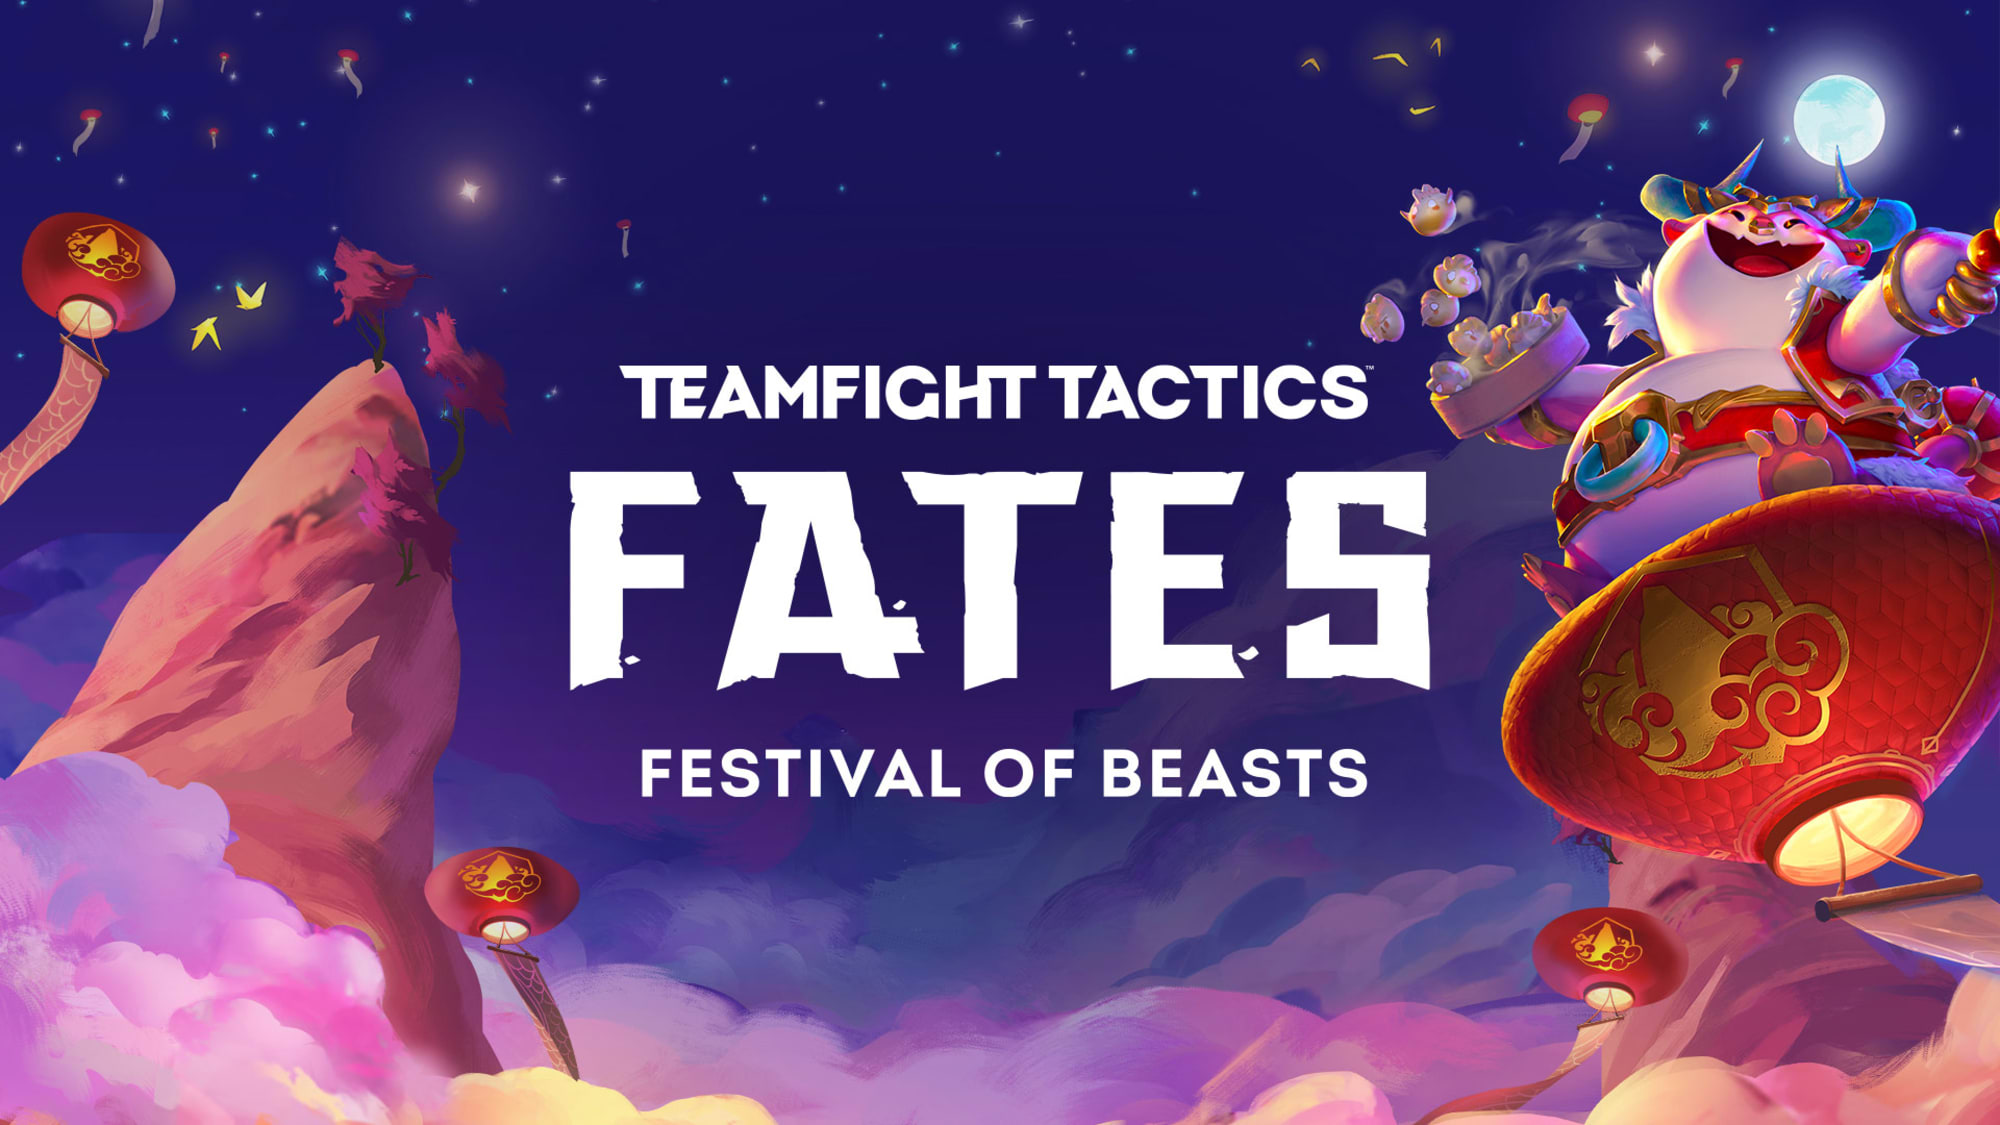 Teamfight Tactics - Download Teamfight Tactics for FREE - Free Cheats for Games